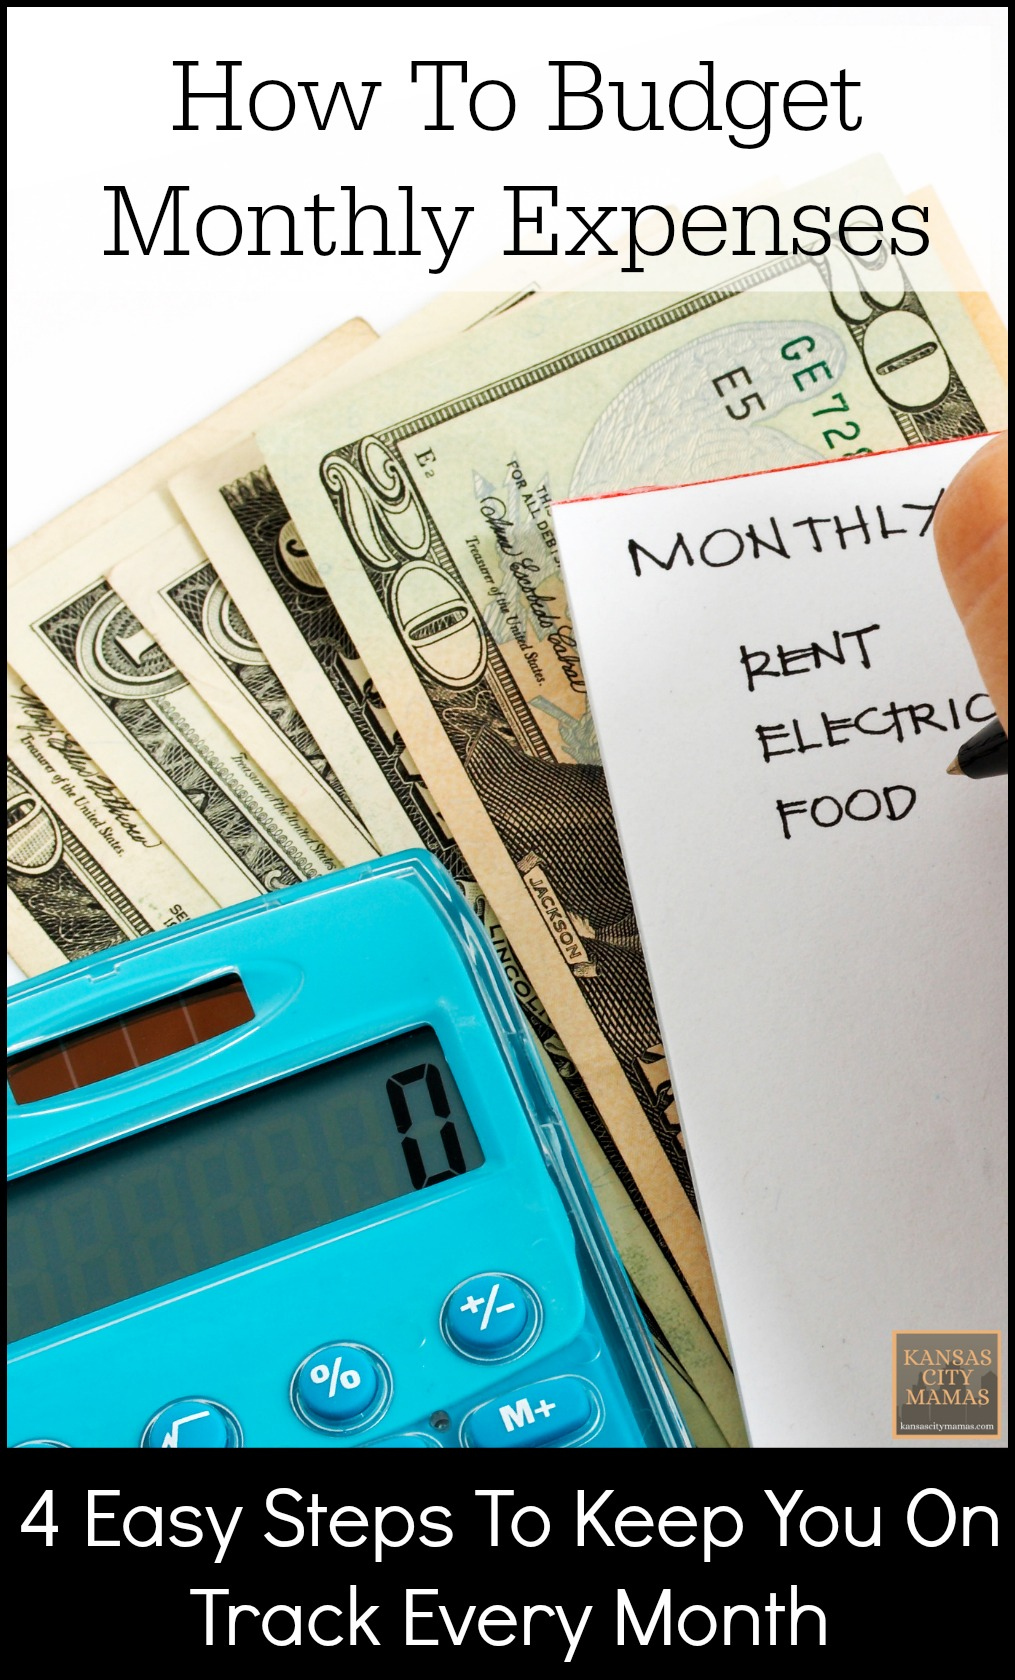 How To Budget Monthly Expenses | KansasCityMamas.com